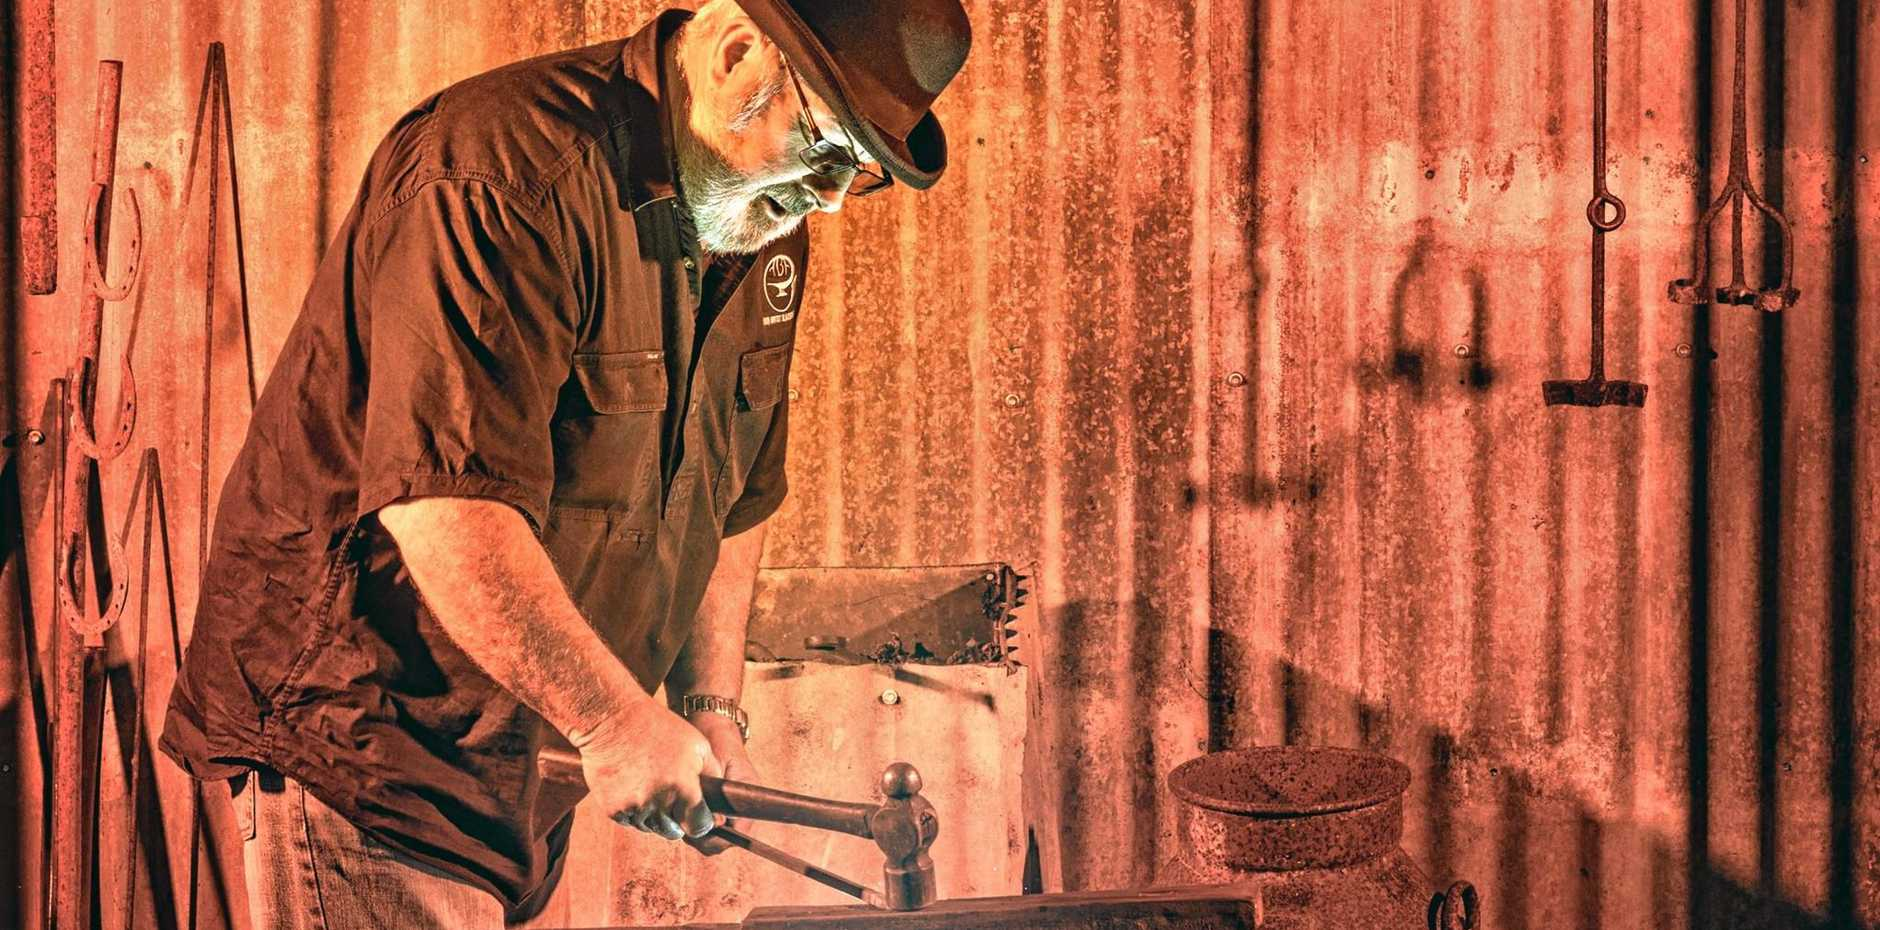 IRON MAN: Larry Adams plies his trade in the blacksmith's shed at the Lawrence Museum.